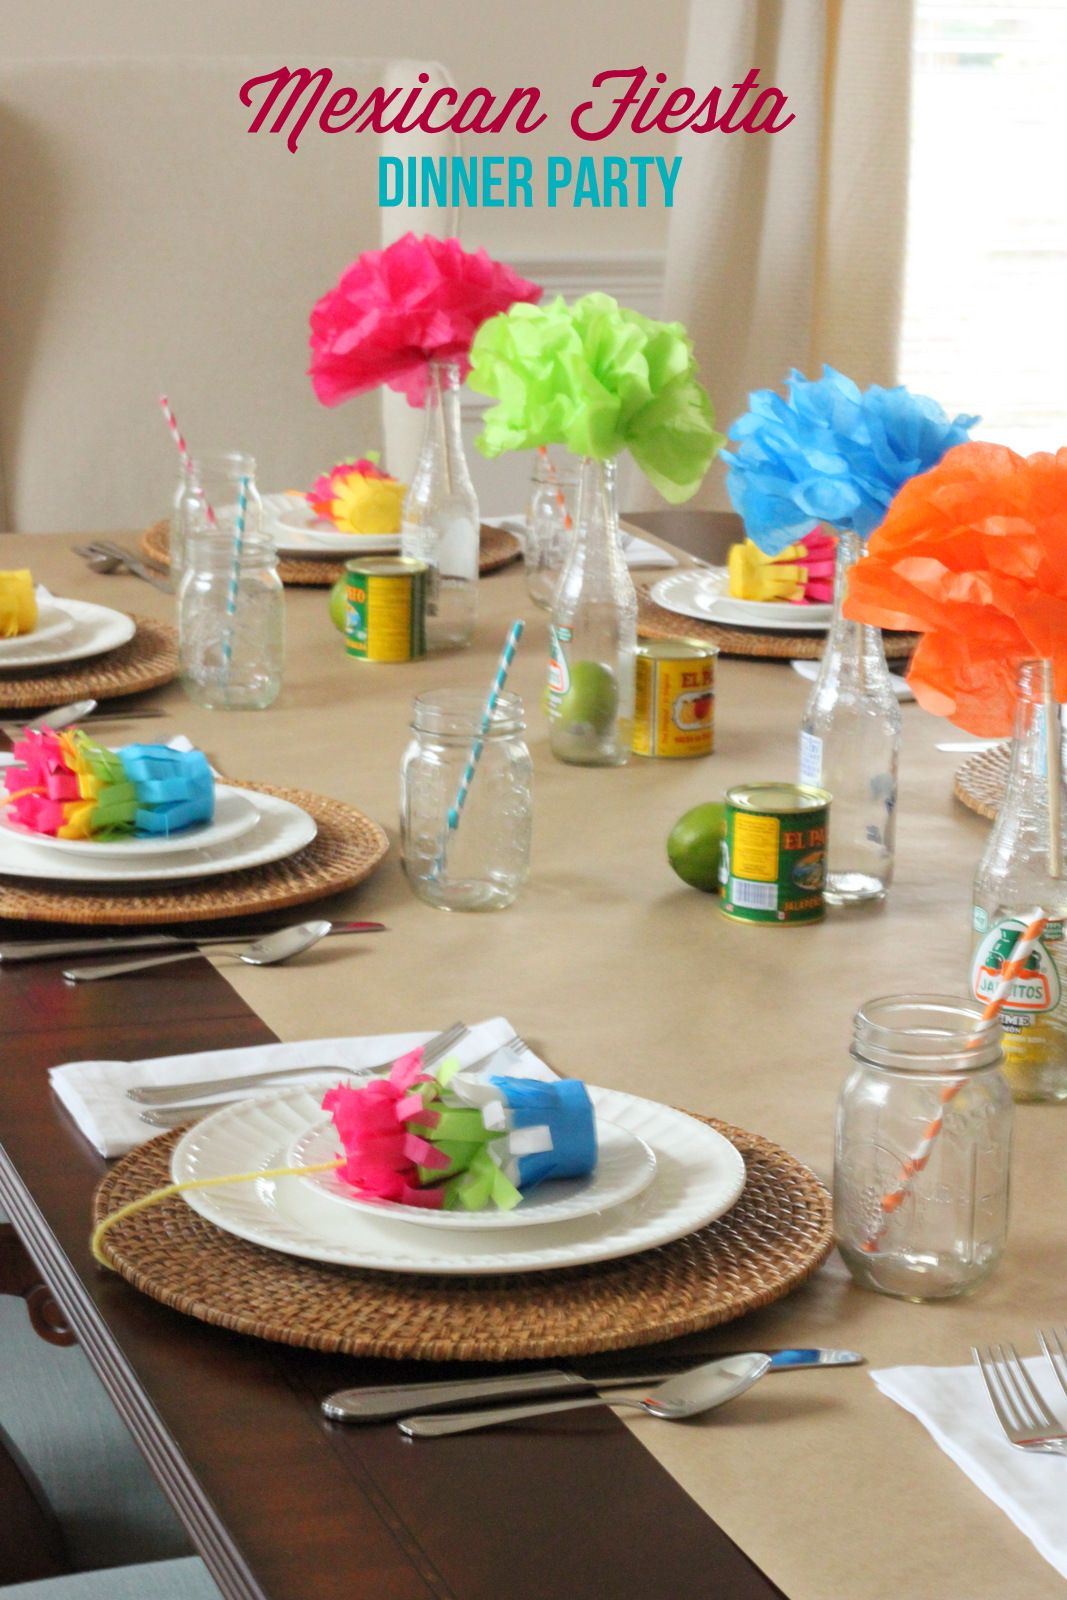 Dinner party ideas mexican fiesta party mirabelle creations